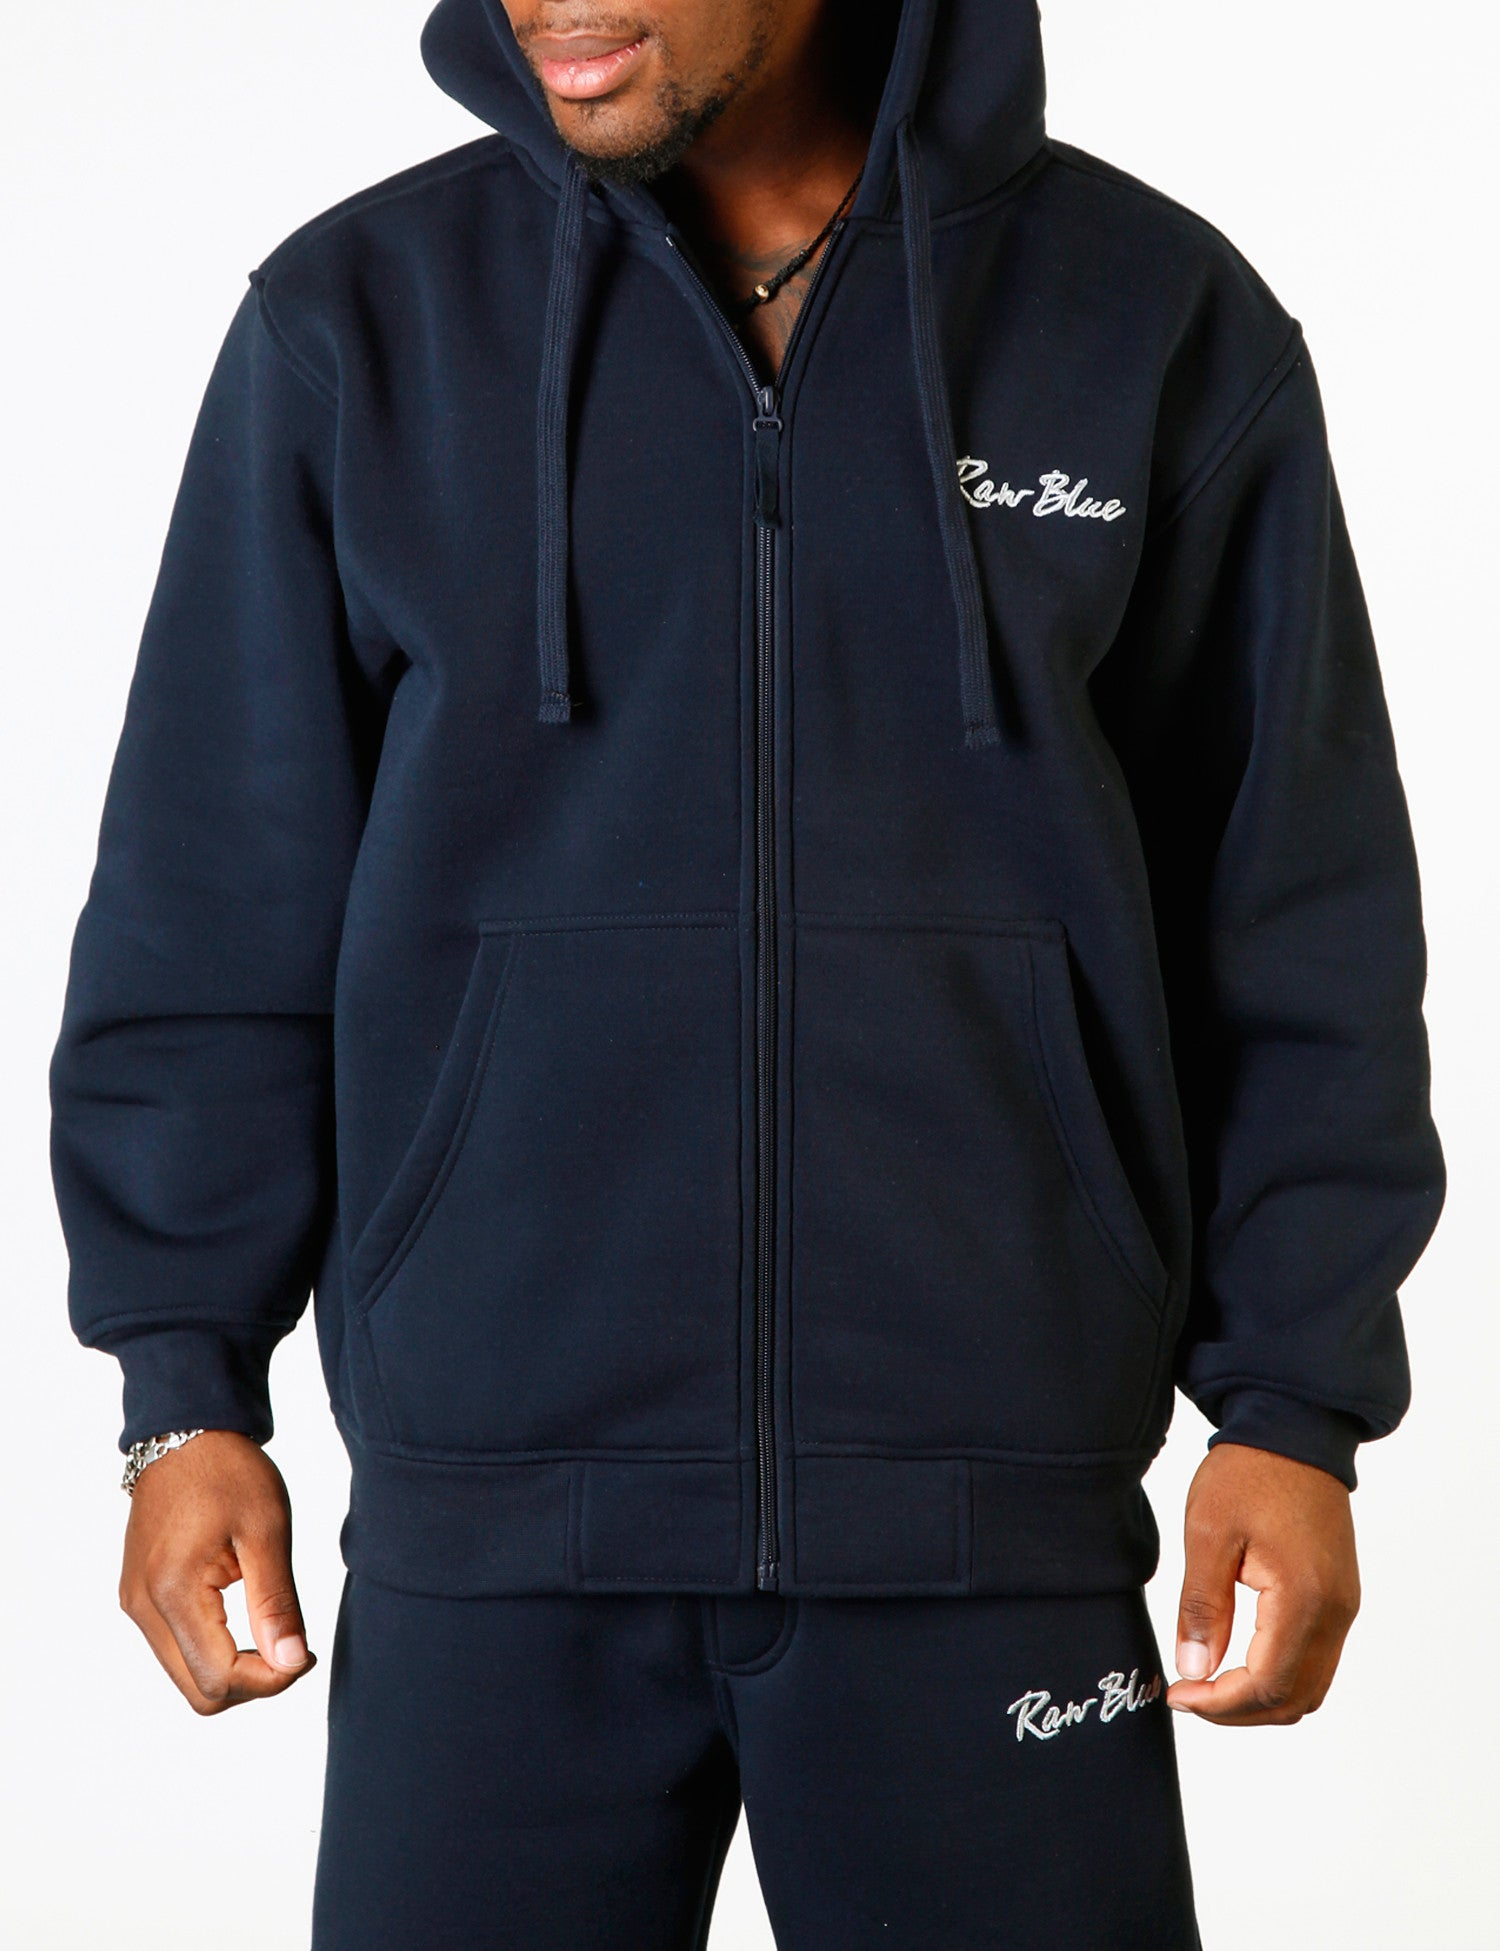 Signature Zip Hoody EF-4572 Navy